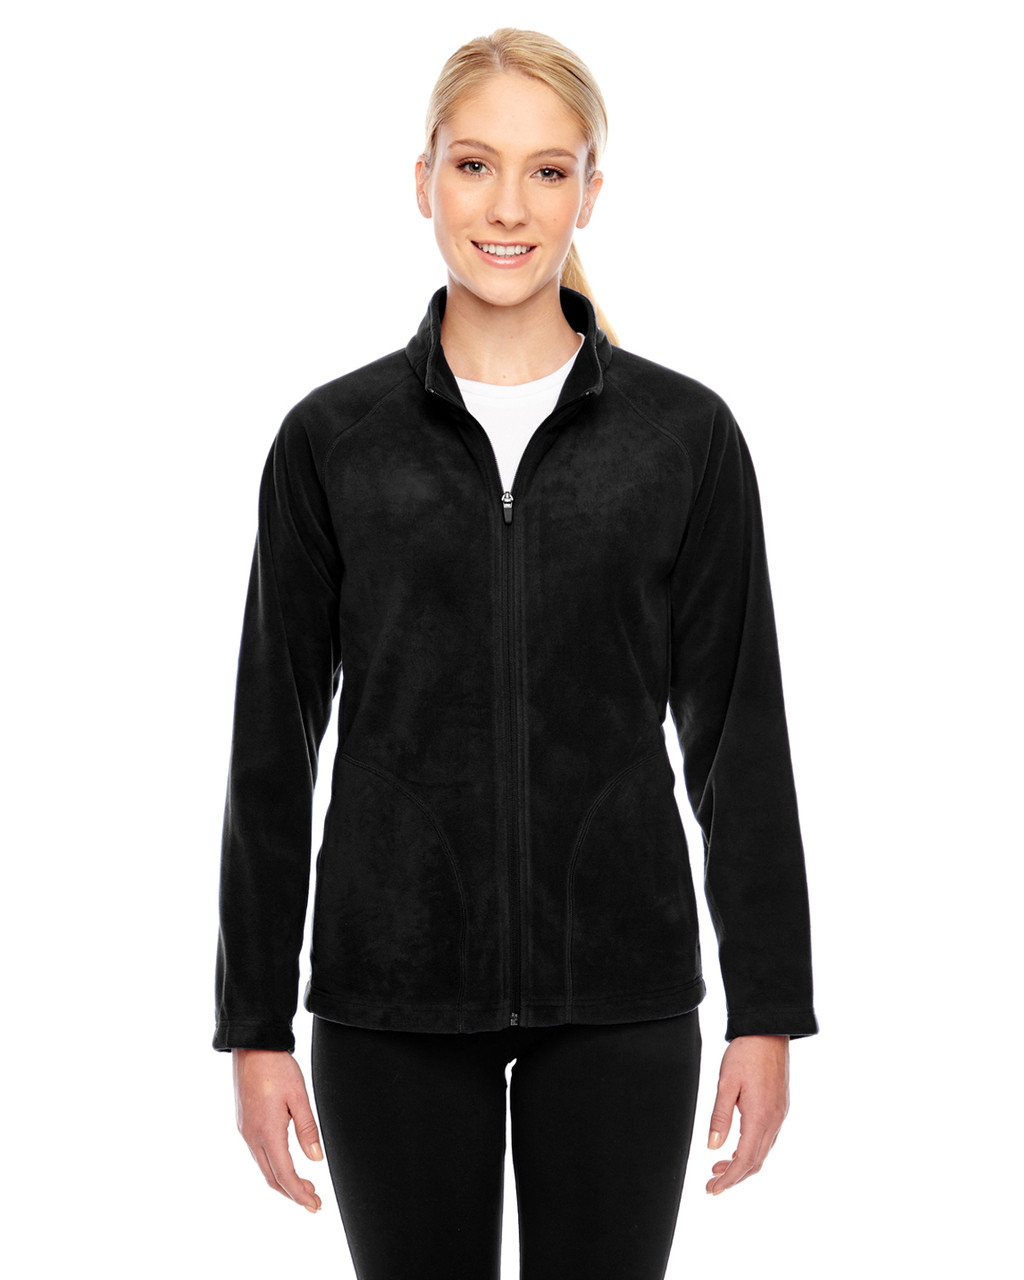 Black - TT90W Team 365 Ladies' Campus Microfleece Jacket | BlankClothing.ca